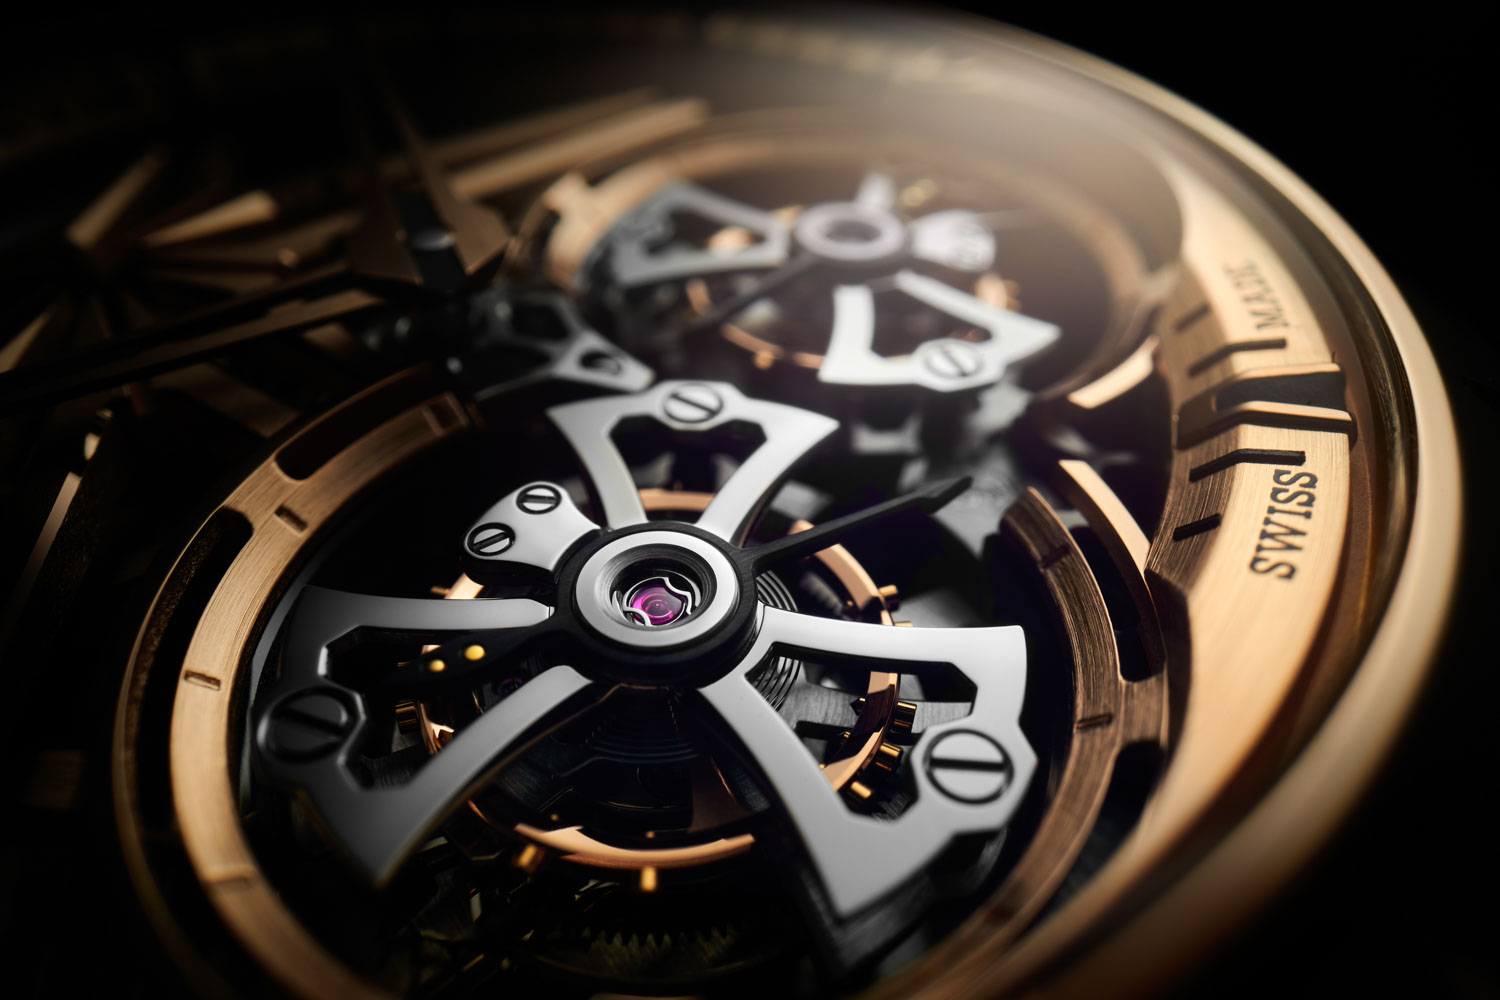 A closer look at the tourbillon bridges on the 2021 Roger Dubuis Excalibur Double Flying Tourbillon